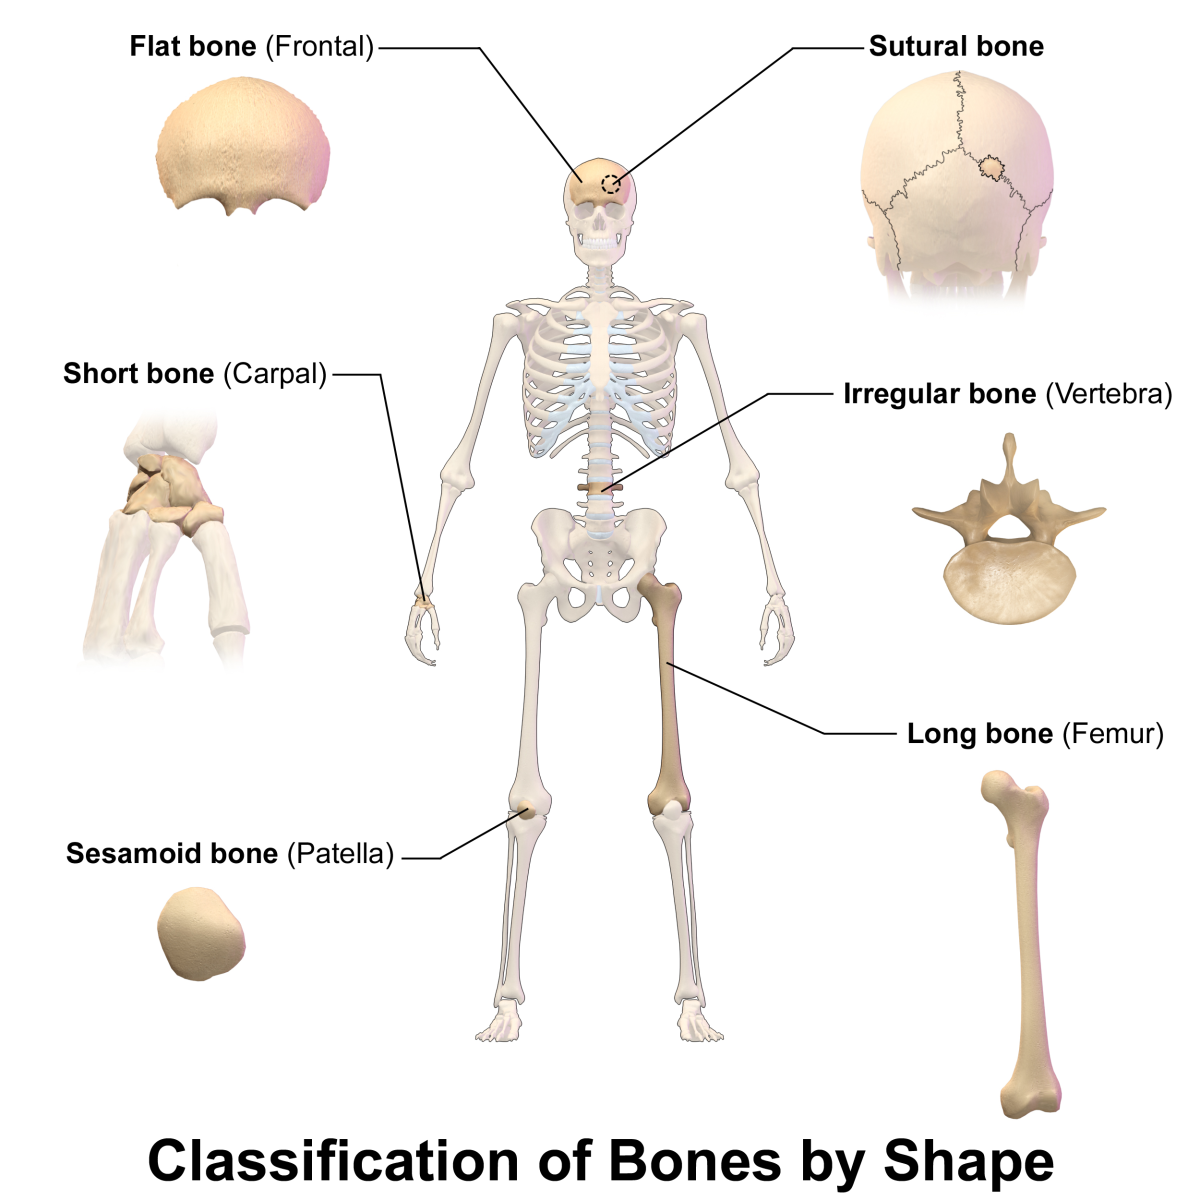 The six types of bones classified by shape